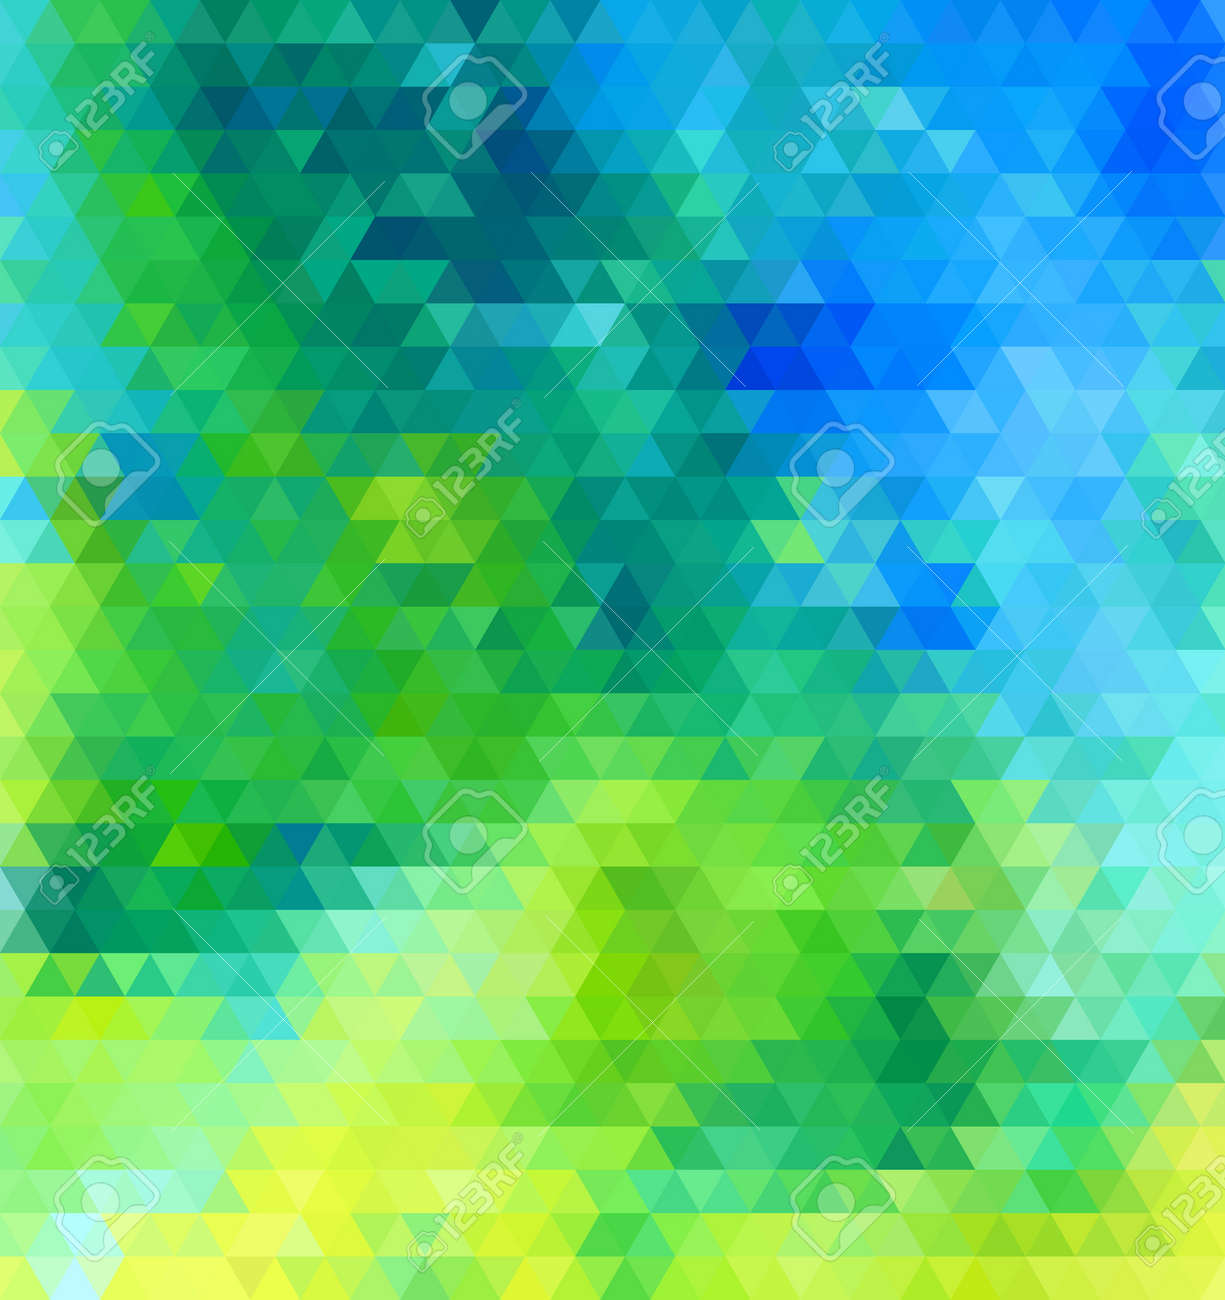 Blue Green Abstract Geometric Seamless Pattern Vector